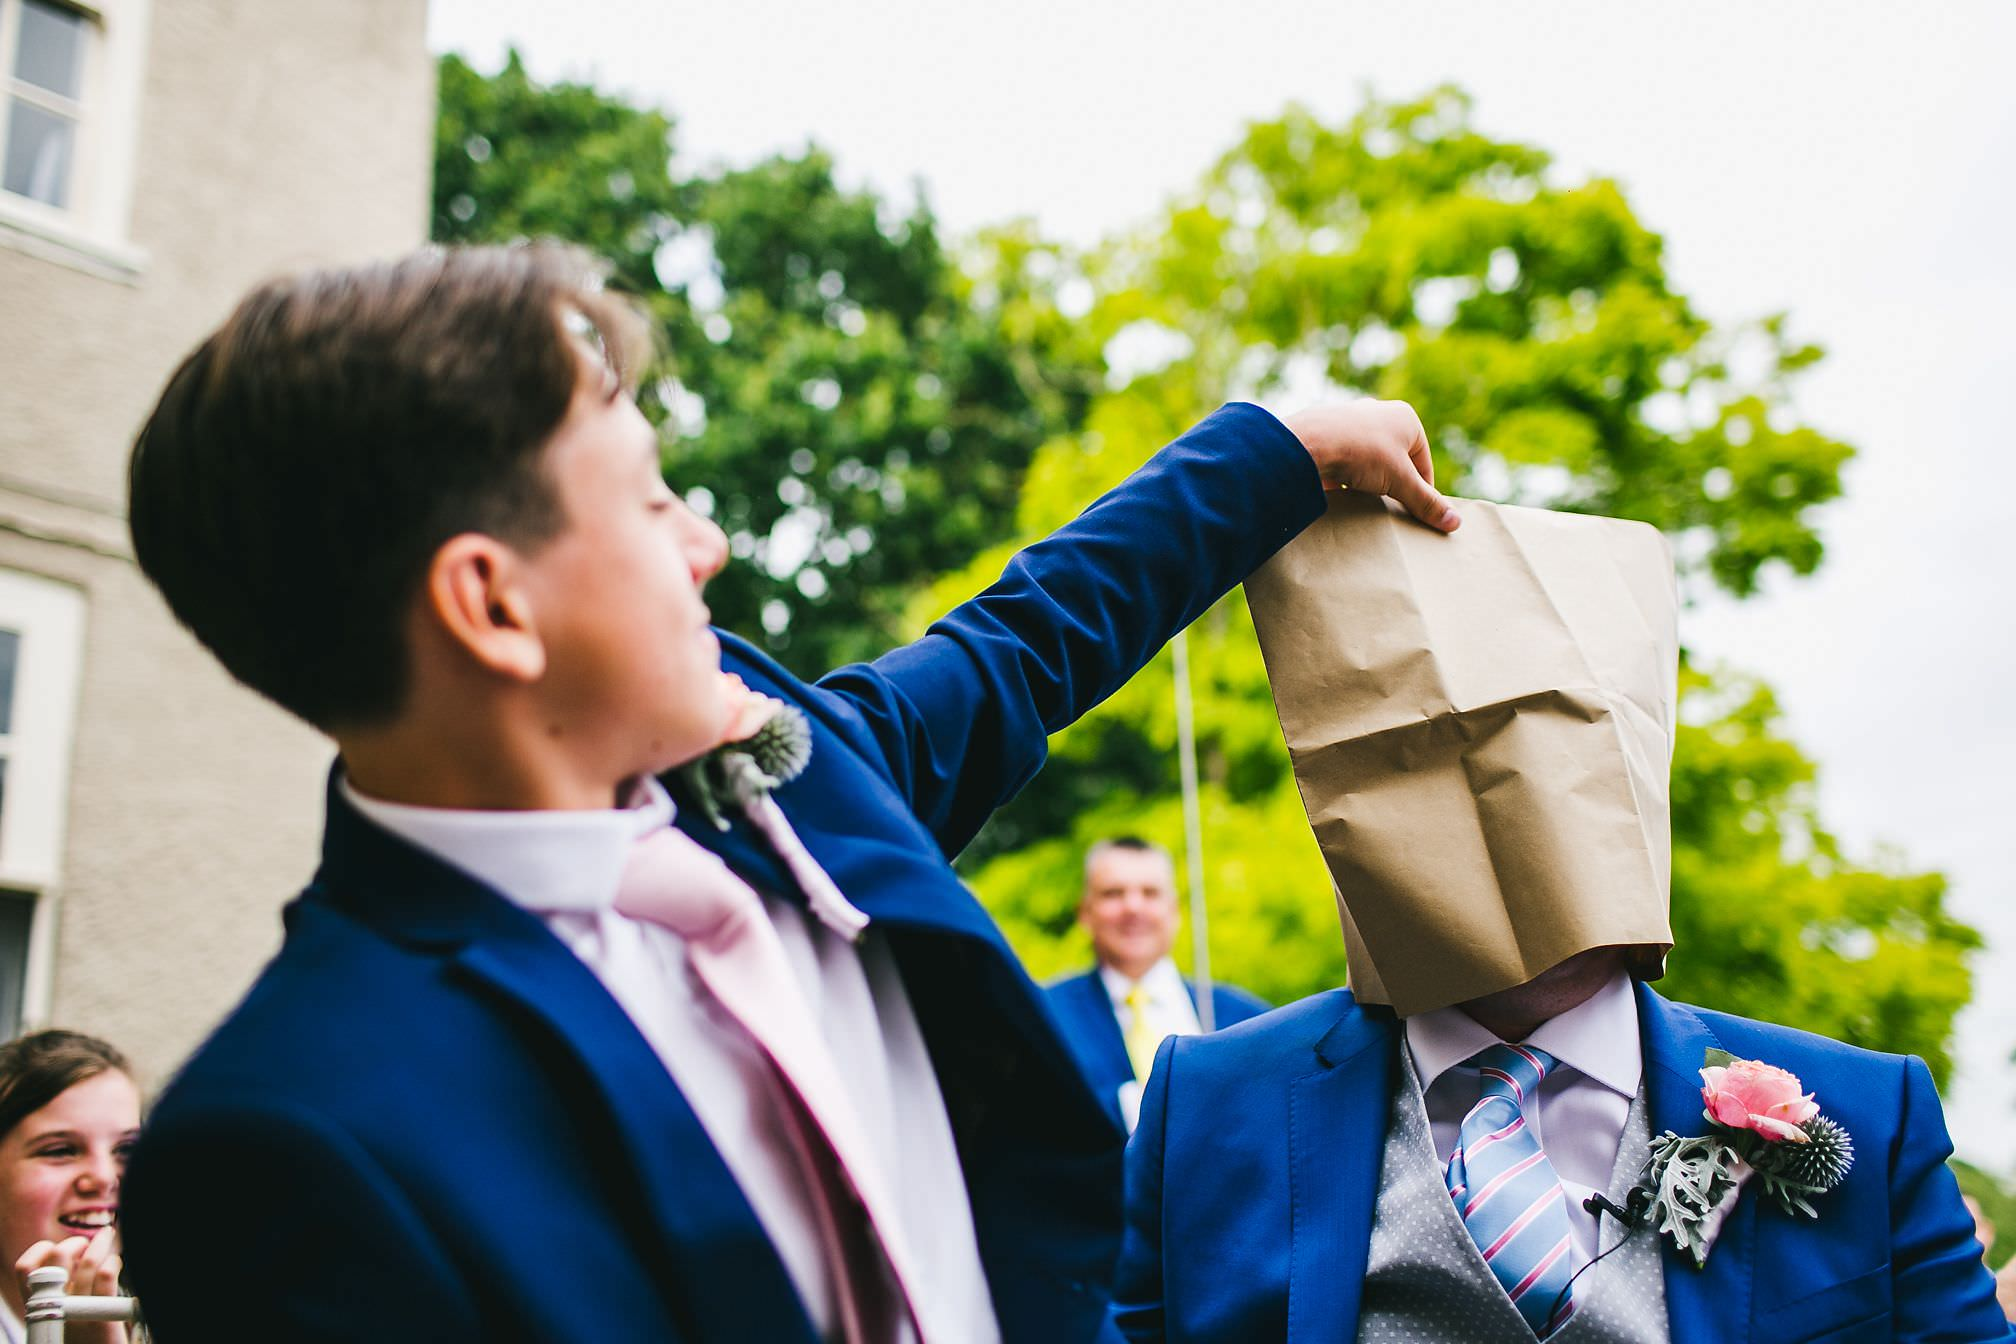 Paper Bag over Grooms Head